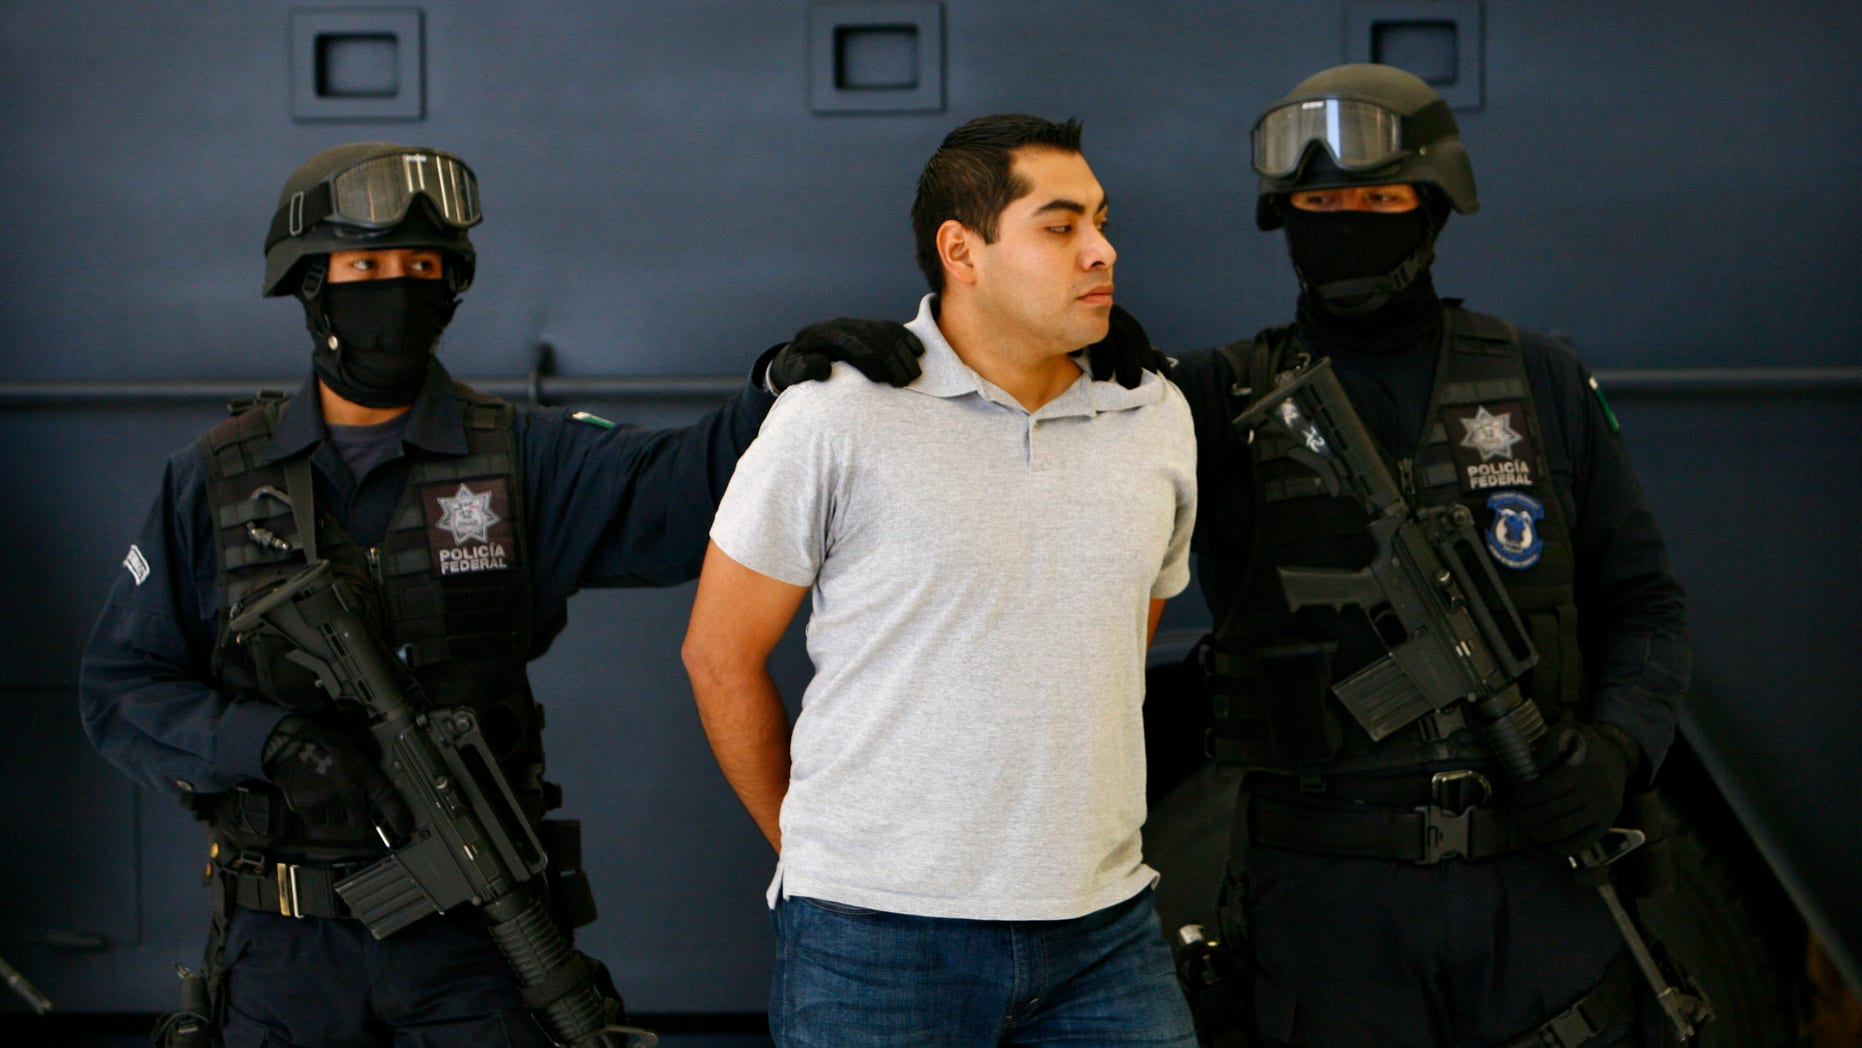 July 15, 2012: Suspect Bogard Felipe Lugo de Leon, center, is escorted by police officers during his presentation to the media in Mexico City.